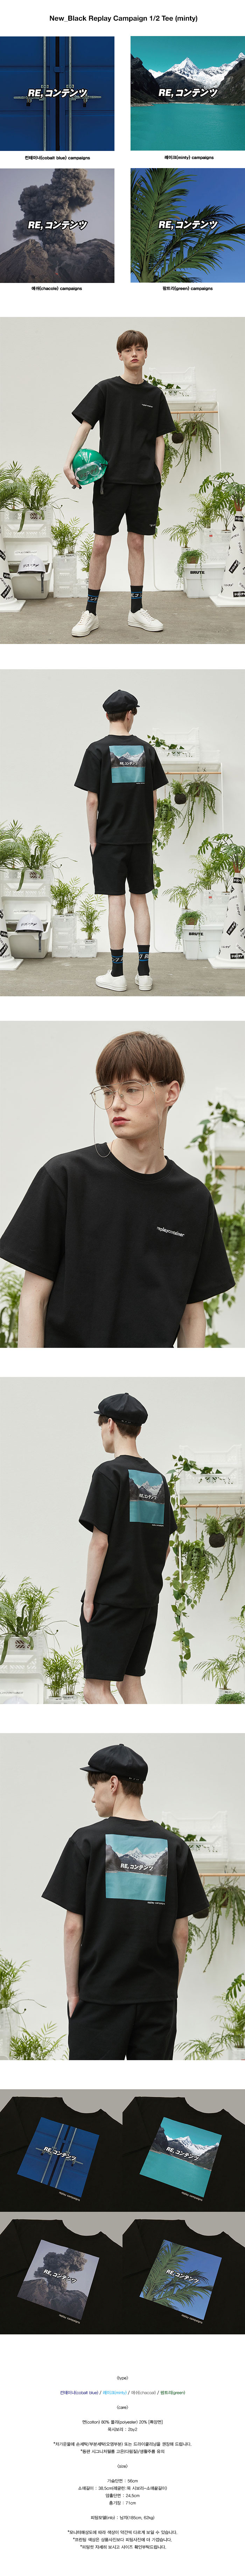 리플레이컨테이너(REPLAY CONTAINER) new black replay campaign 1/2 tee (minty)